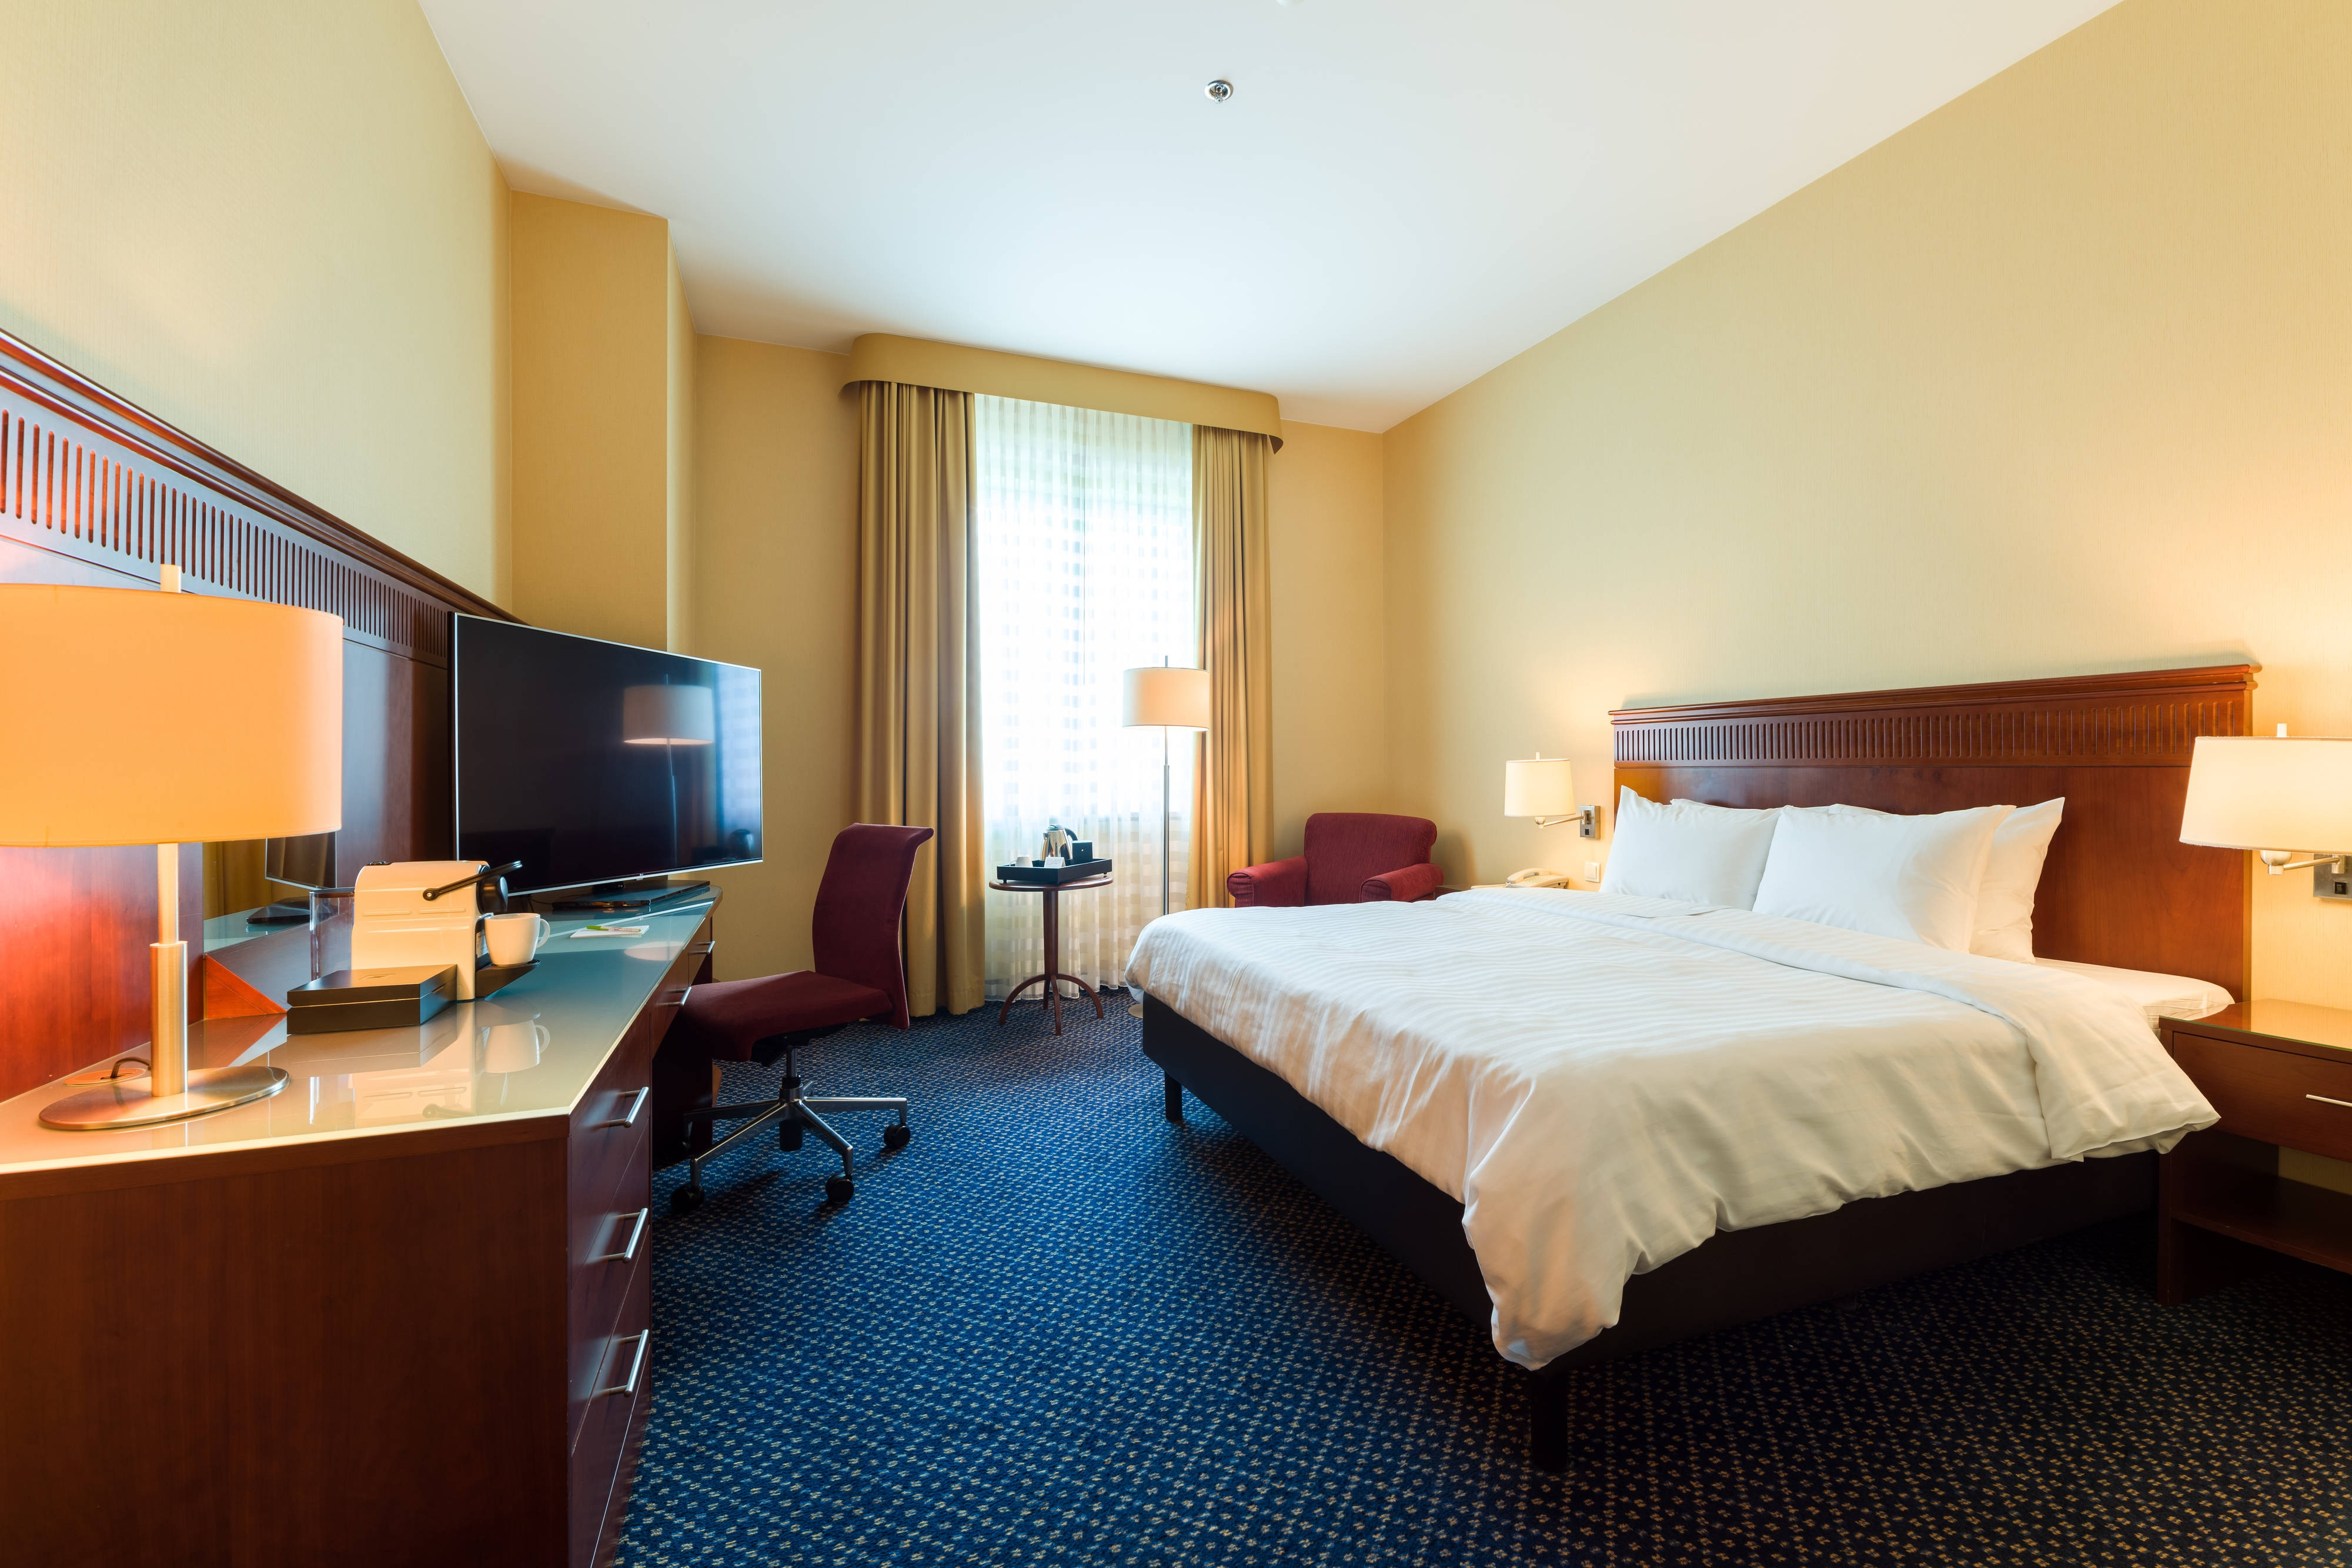 King Grand Superior Guest Room